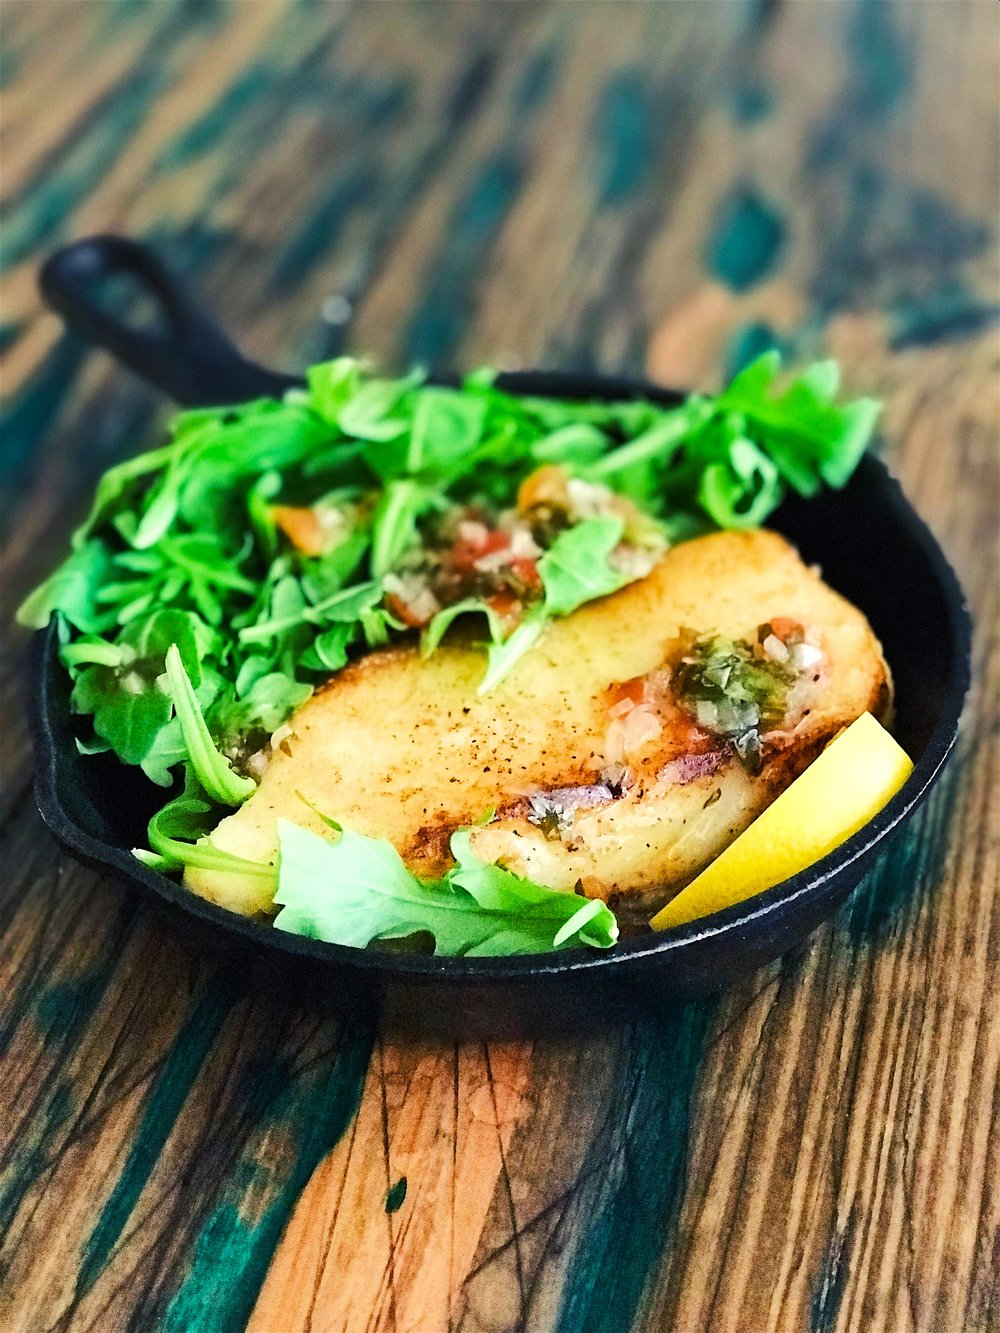 Pan Seared Sea Bass with Arugula & Warm Vinaigrette | RafaellaSargi.com